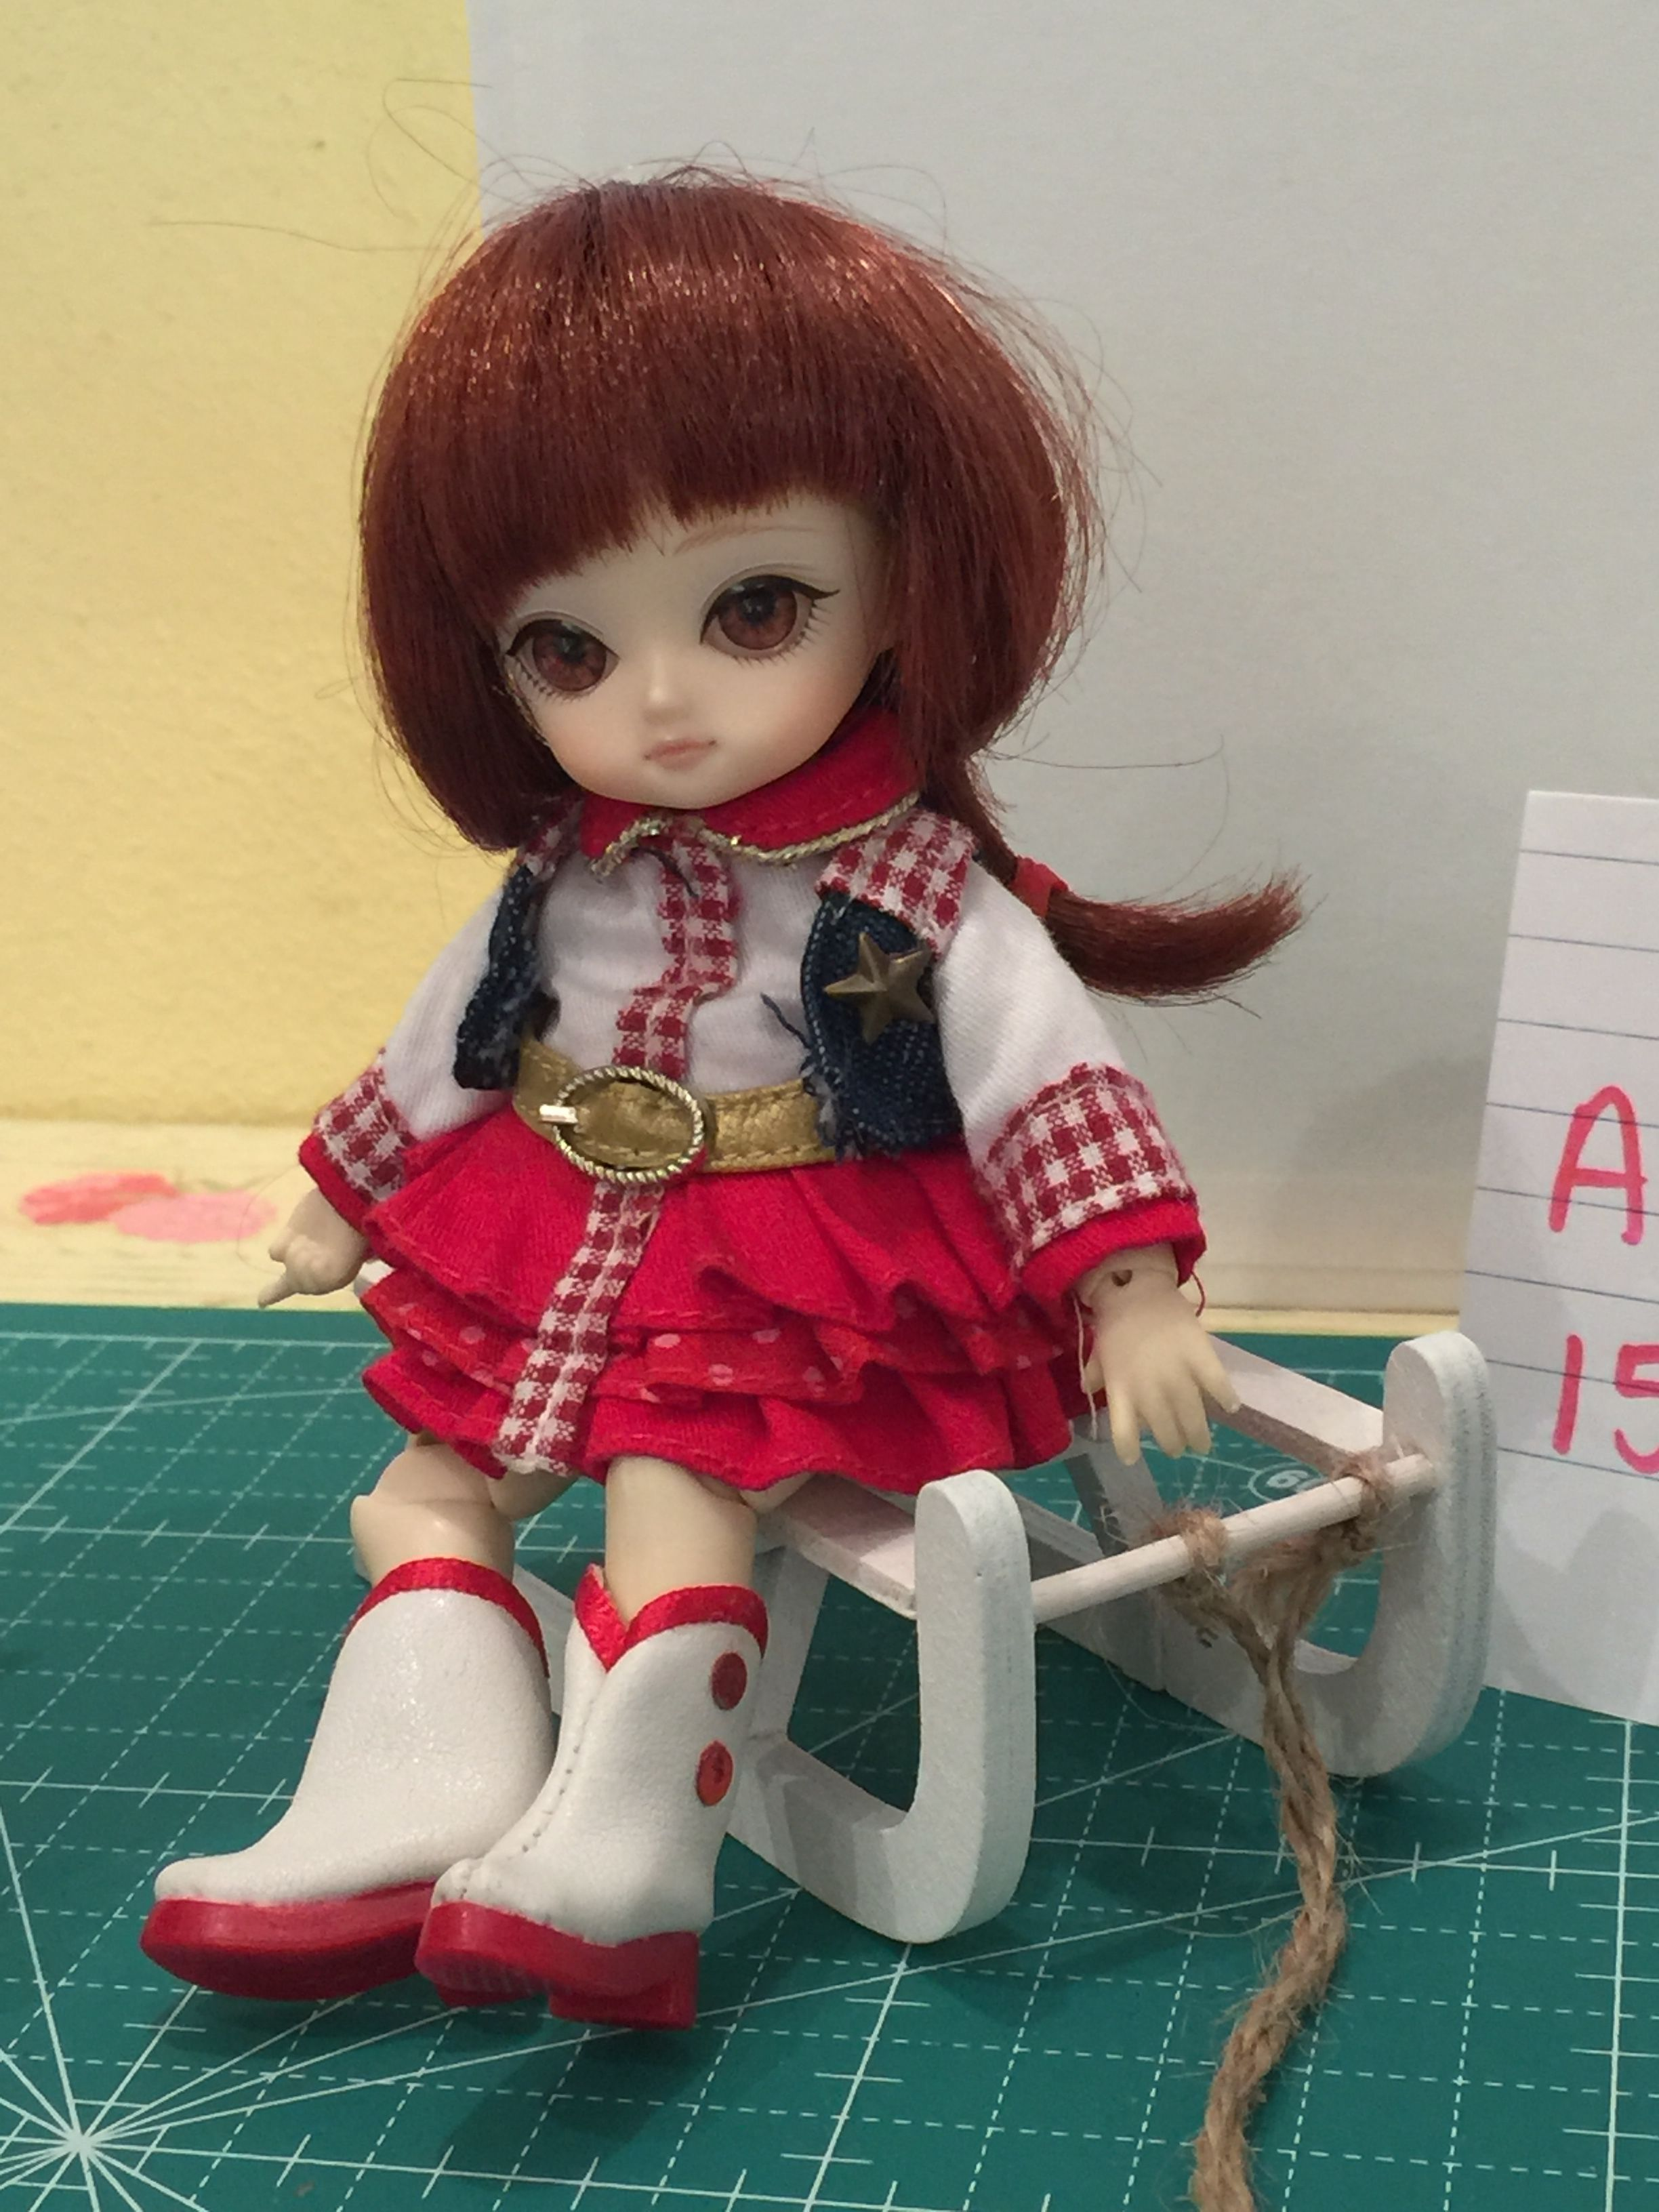 THYME Q-715 JUN PLANNING AI BALL JOINTED DOLL PULLIP GROOVE INC BJD NEW